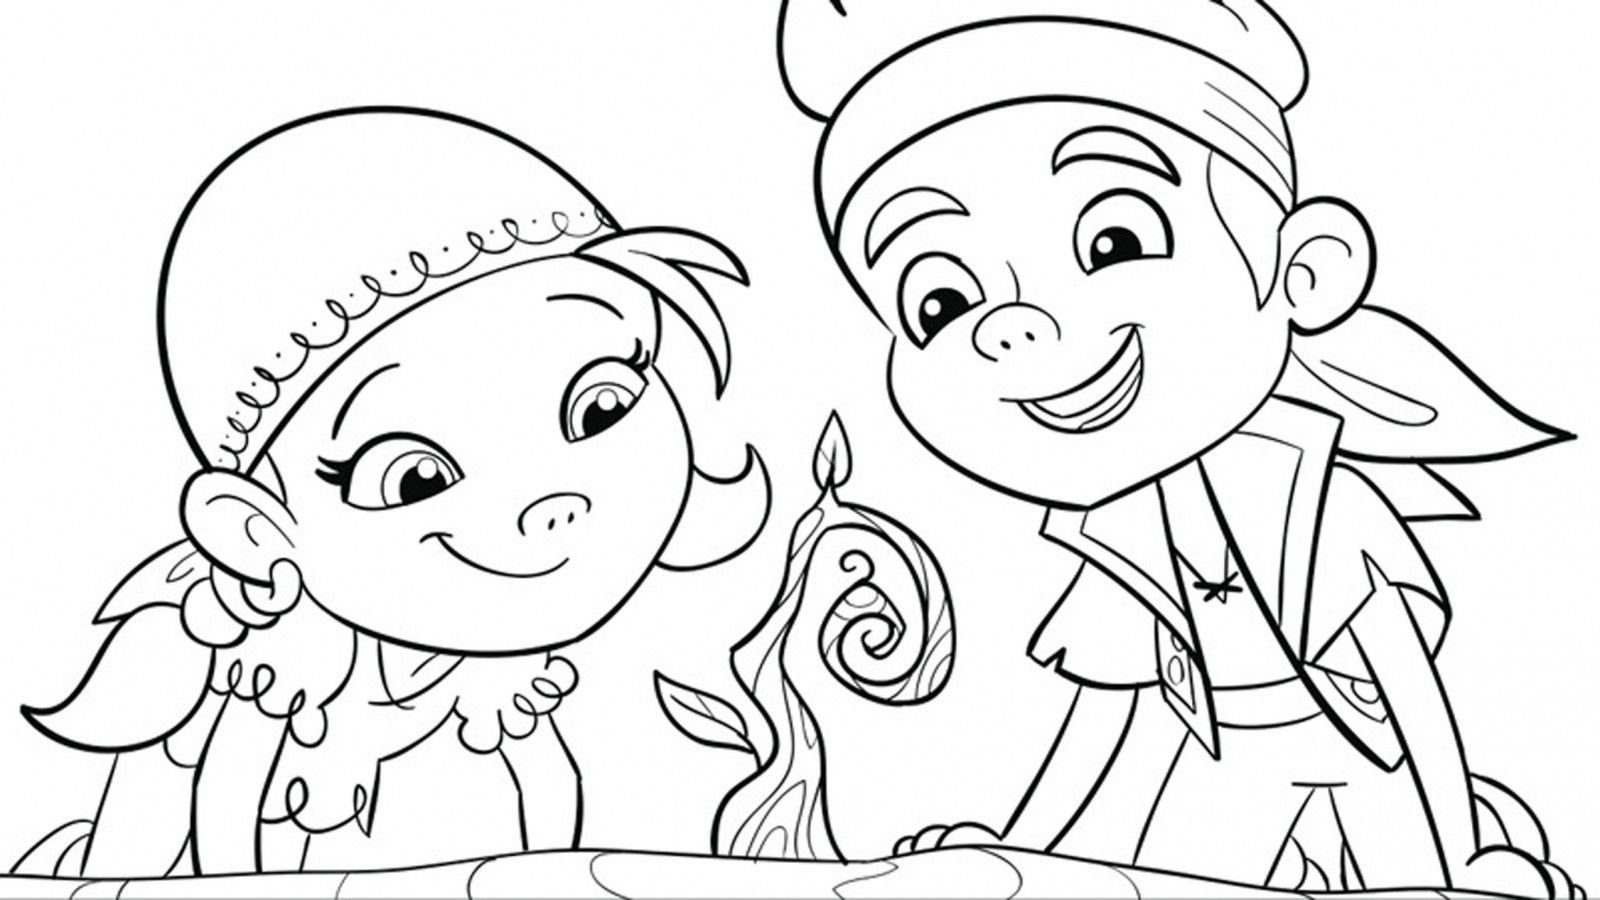 Colorings Printable Disney Coloring Pages For